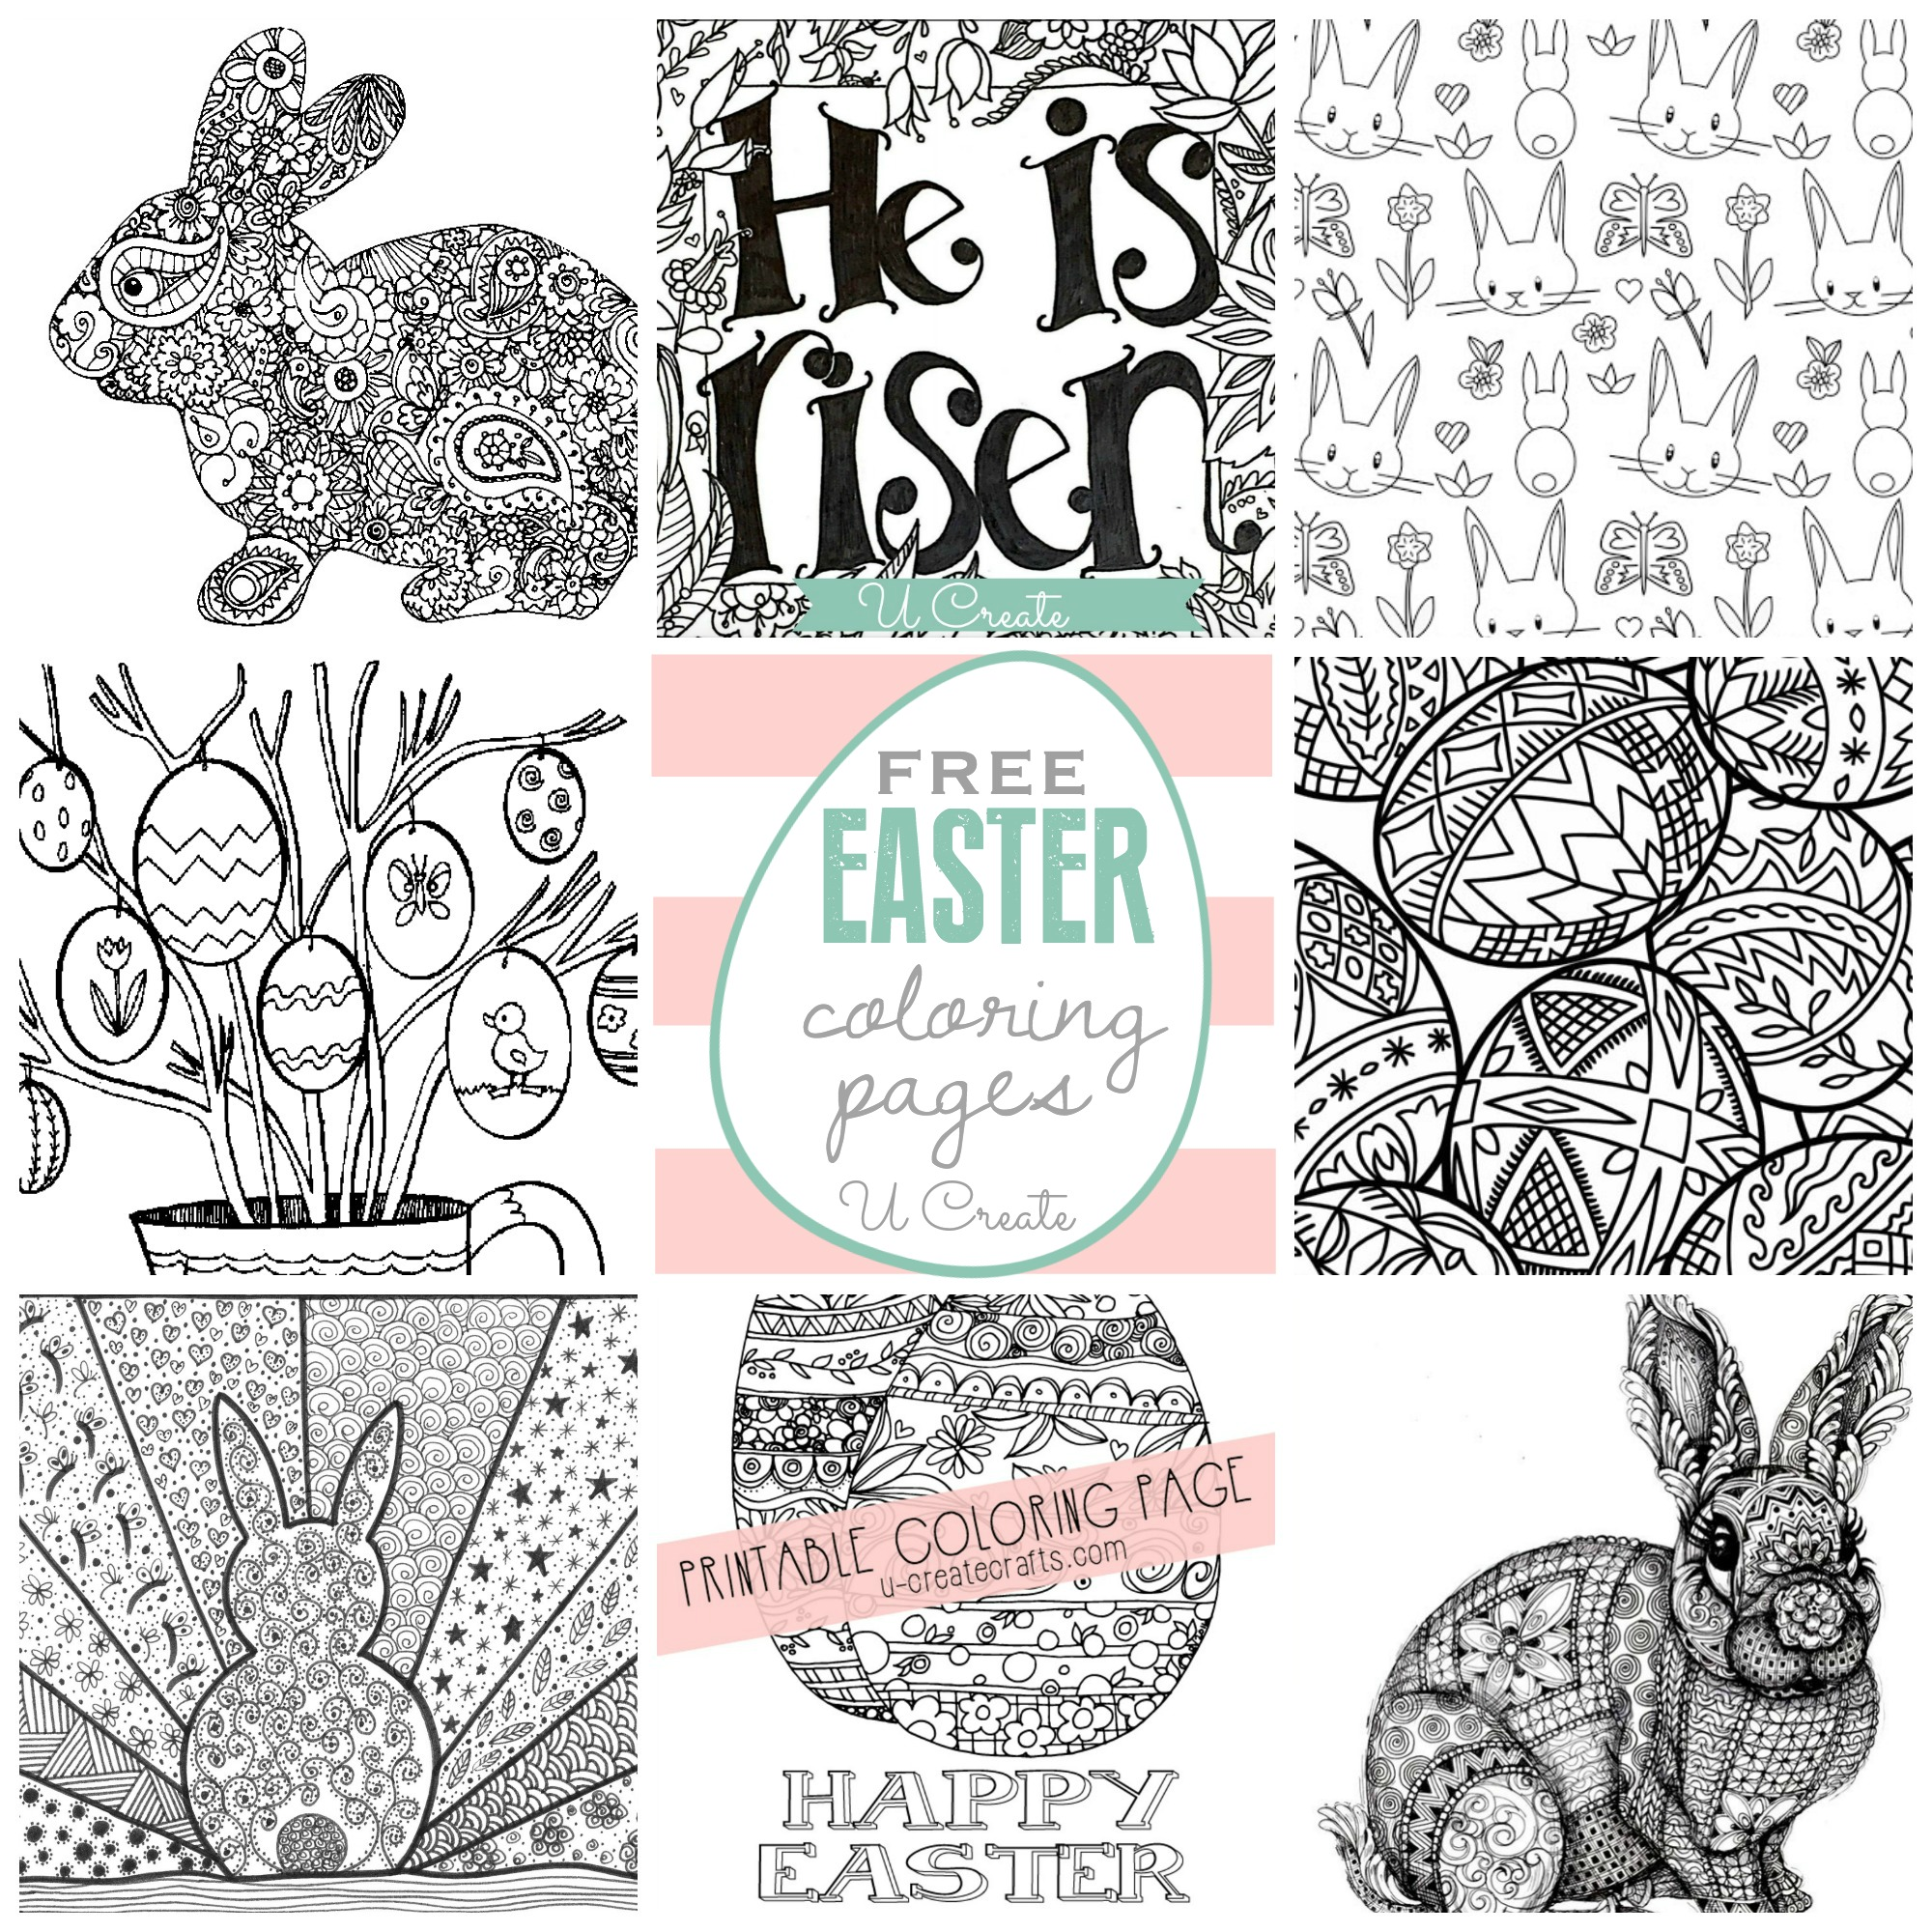 Free Easter Coloring Pages U Create